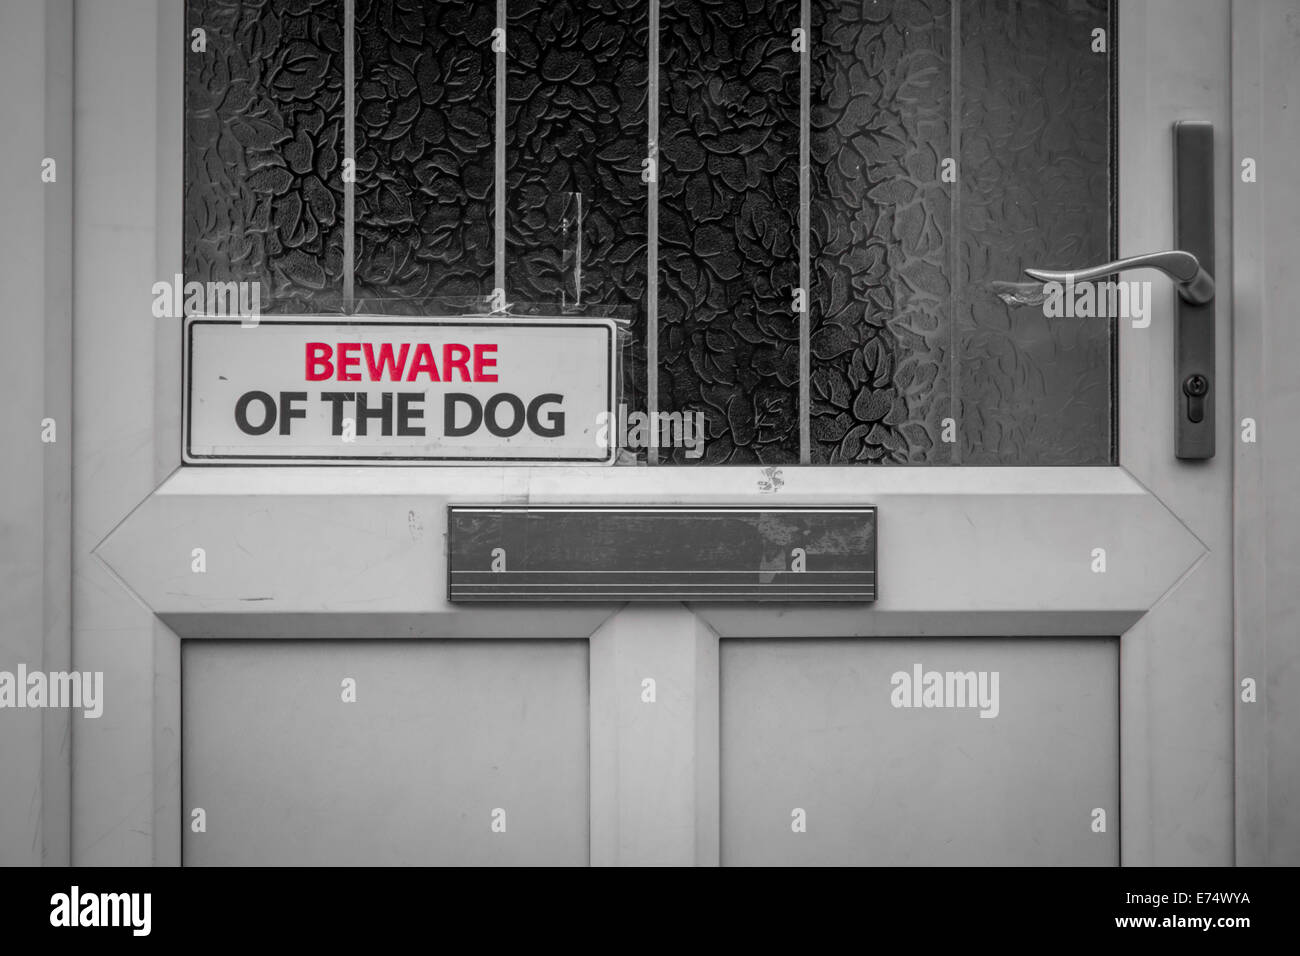 'beware of the dog' sign on a door - Stock Image